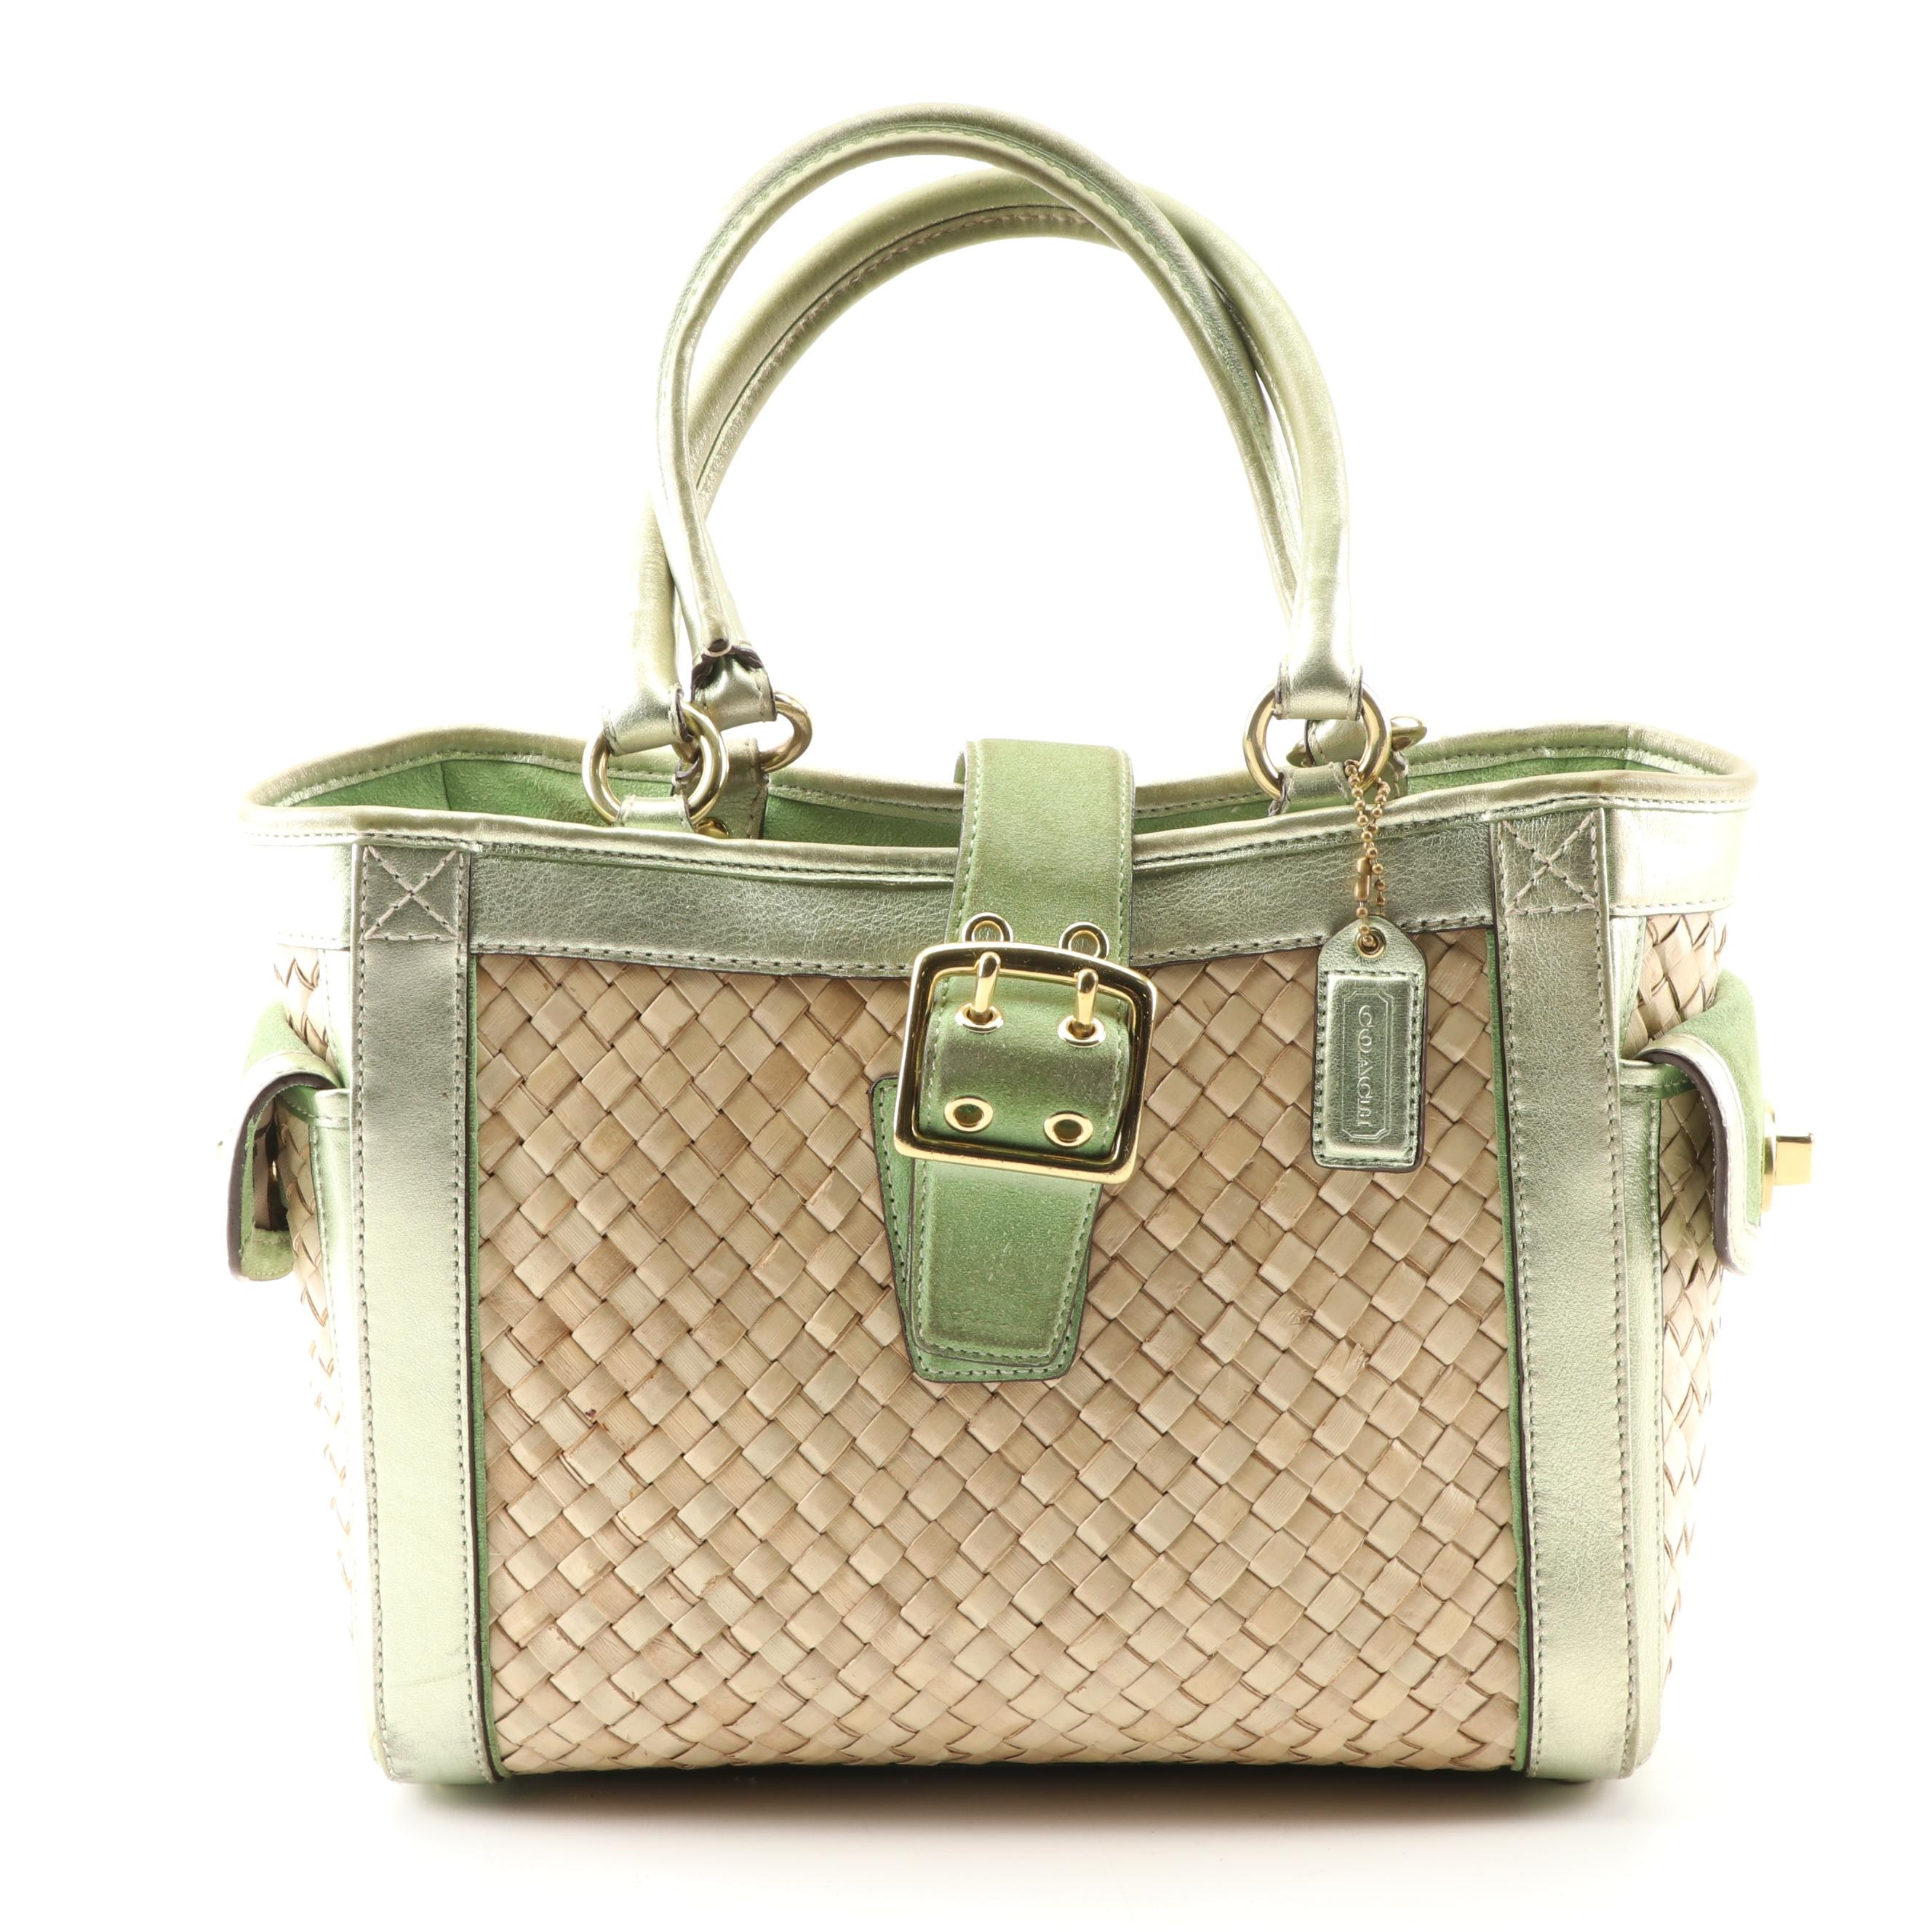 Coach Woven Straw and Green Suede Tote Bag